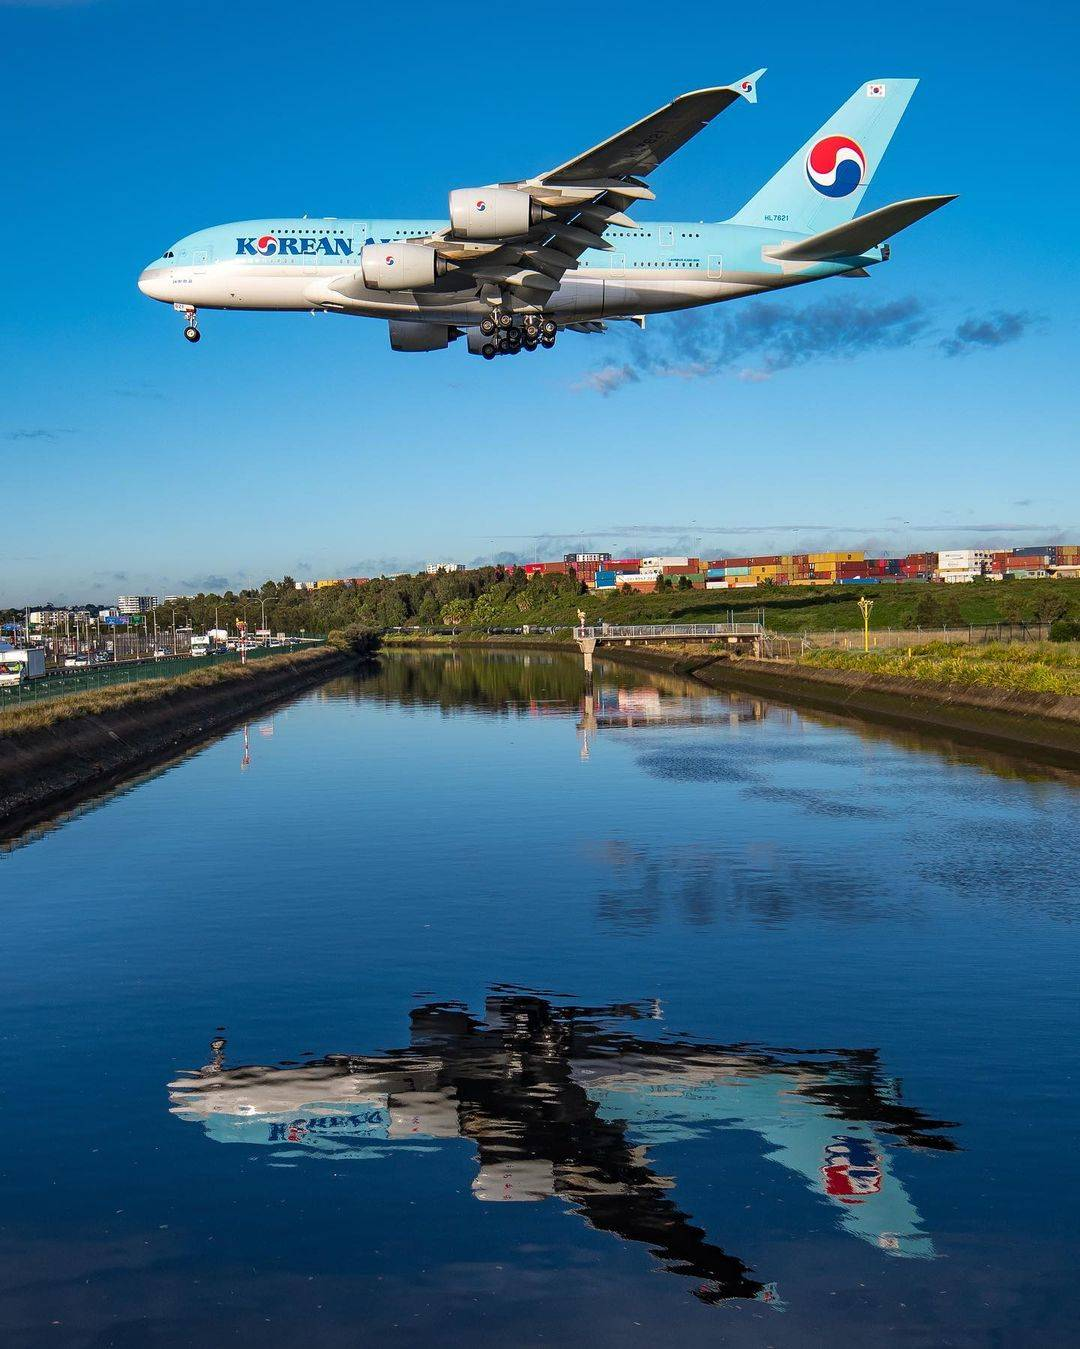 Korean Air - How to get from Seoul to Busan